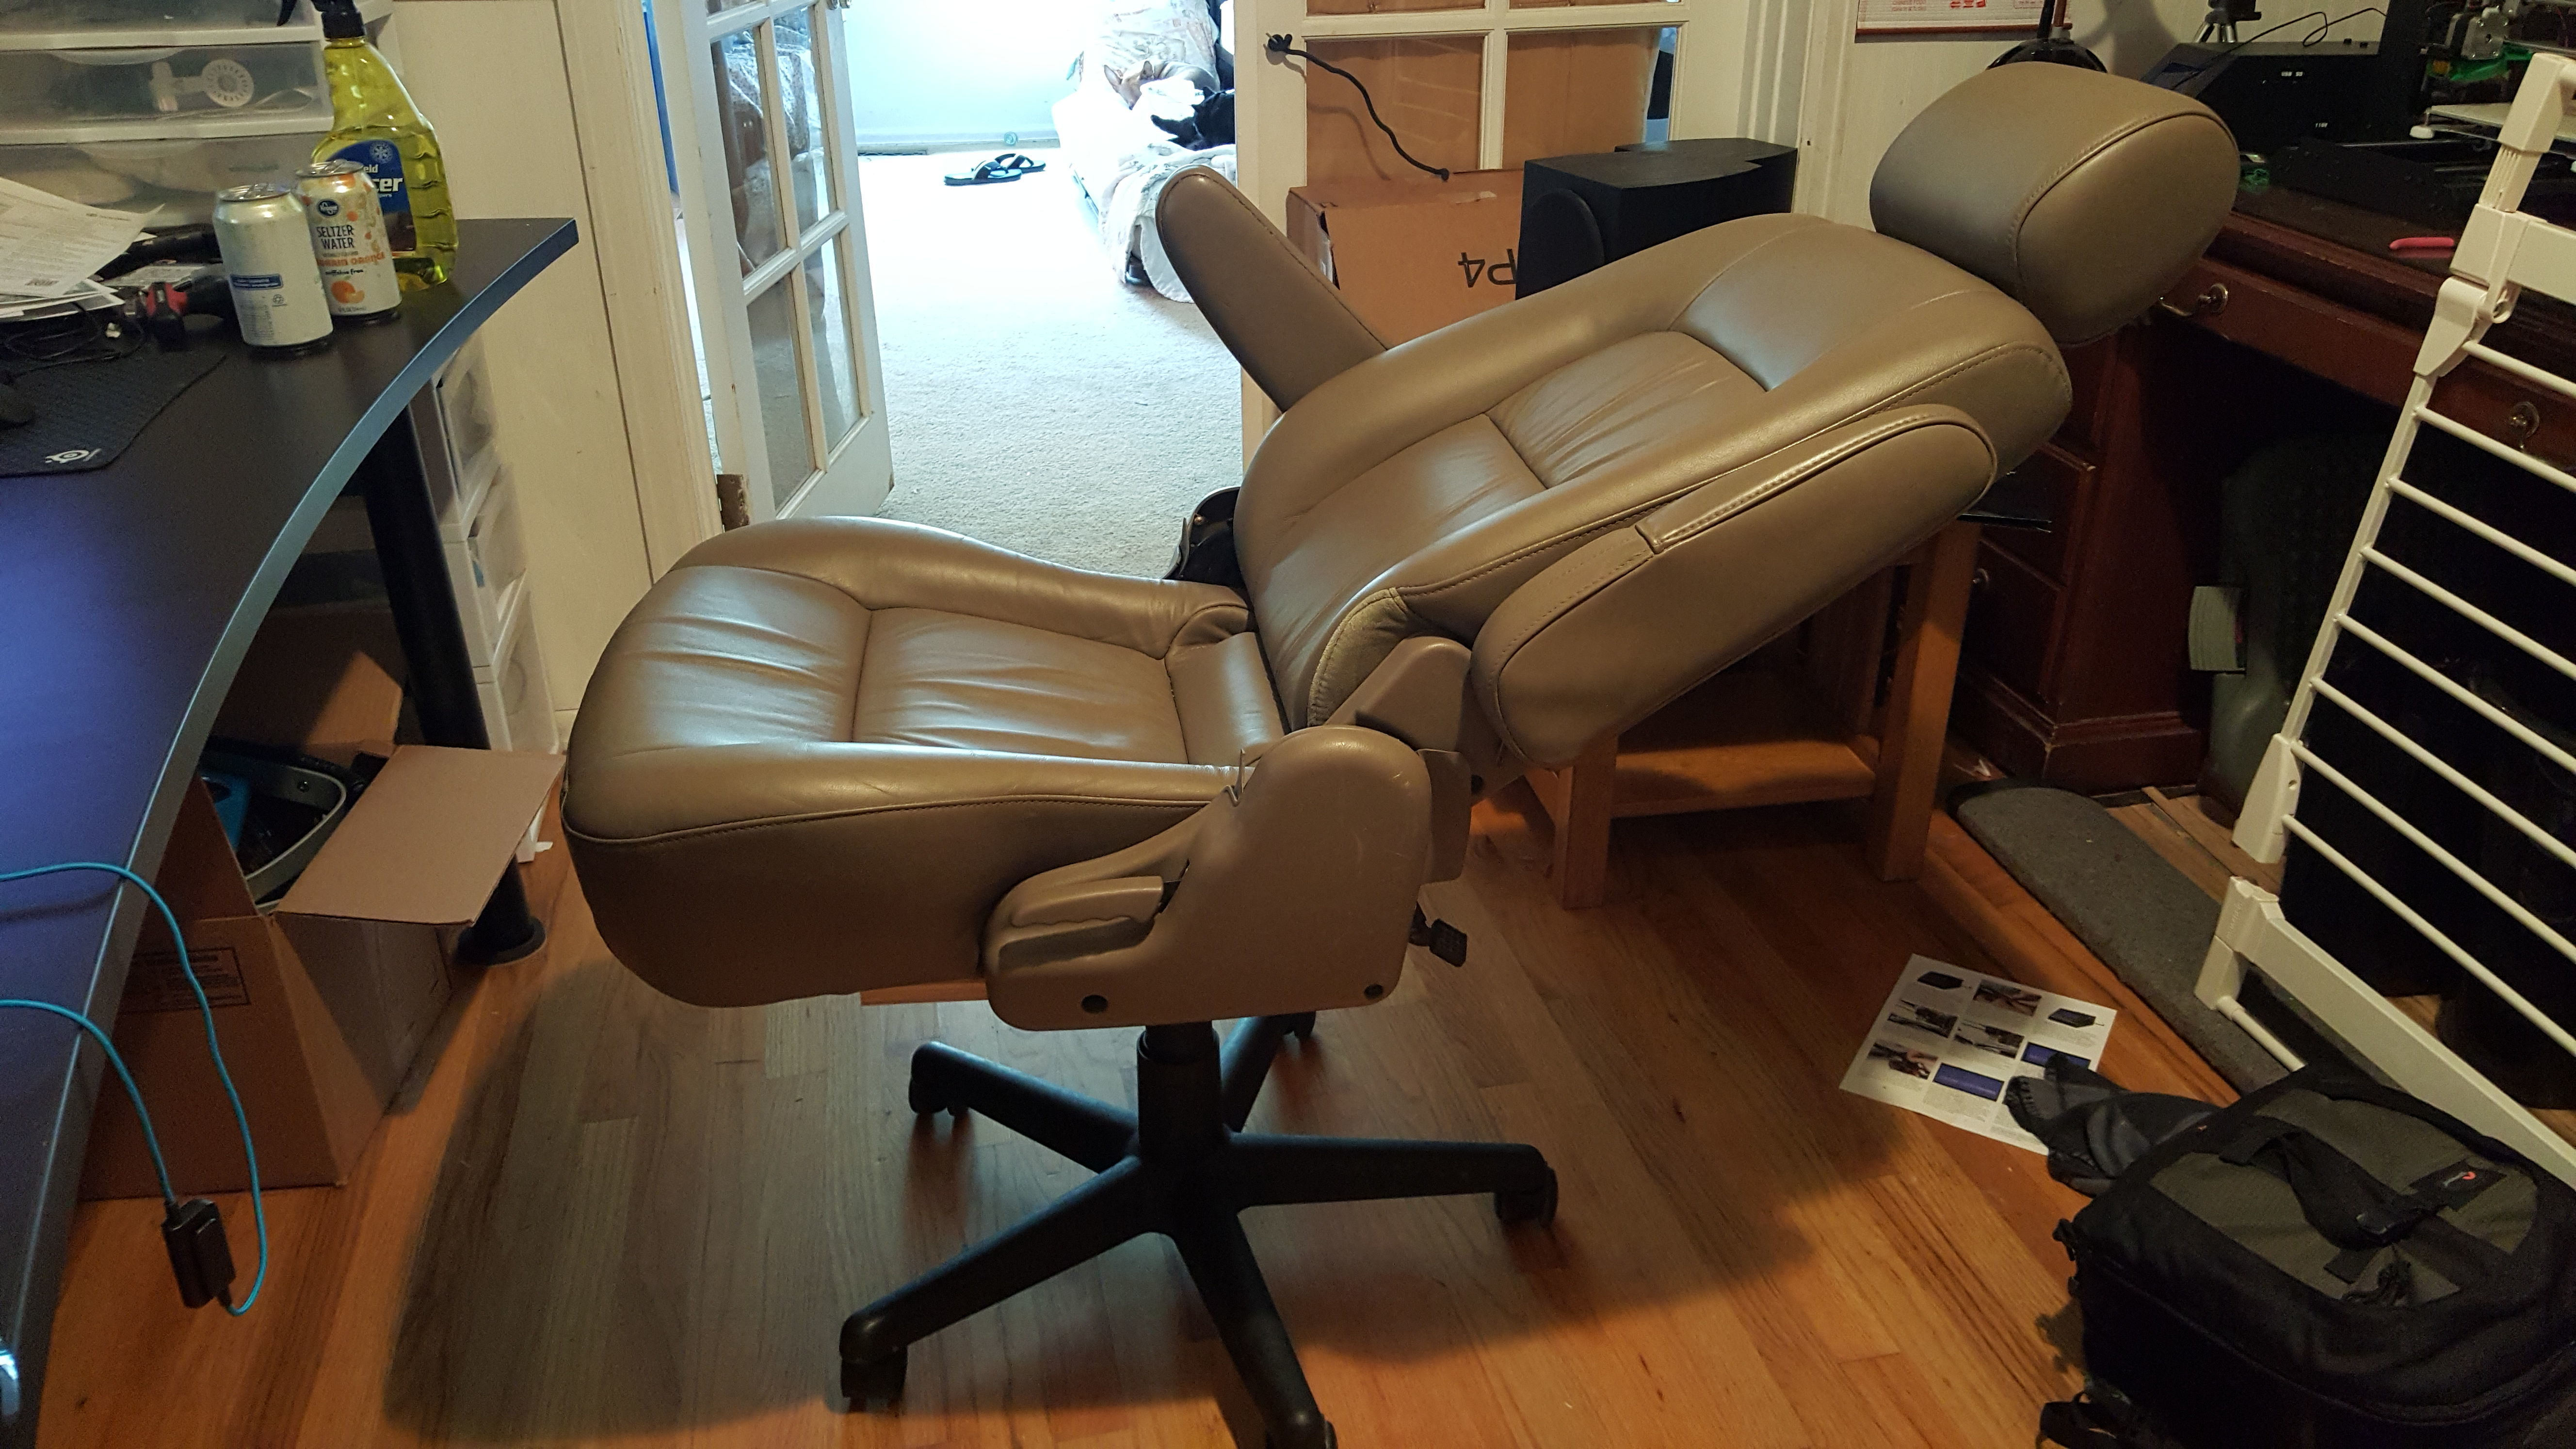 Old Office Chair i made a gaming chair out of an old worn out office chair base and